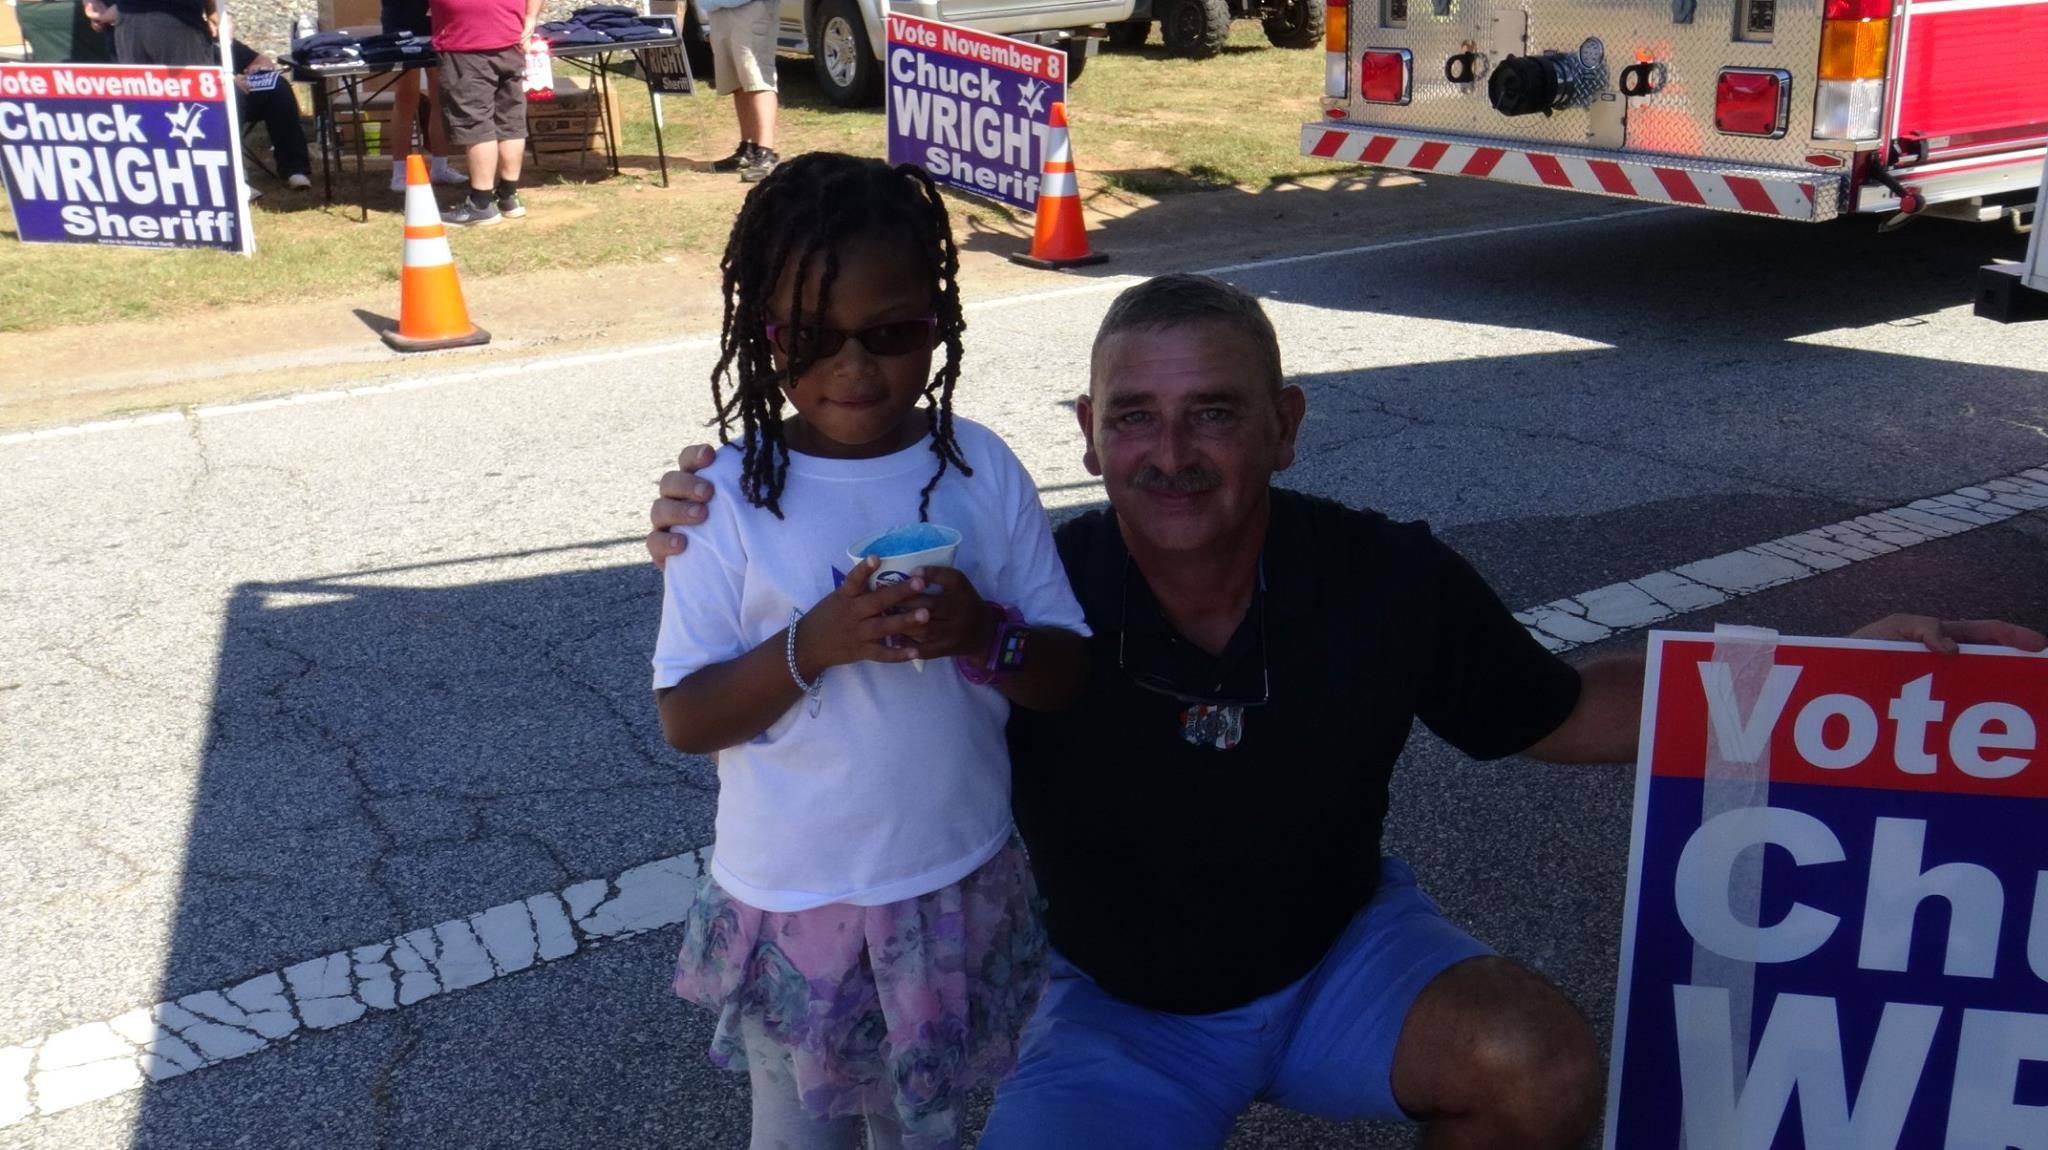 Kayla meet Sheriff Churck Wright at the Harvest Festival